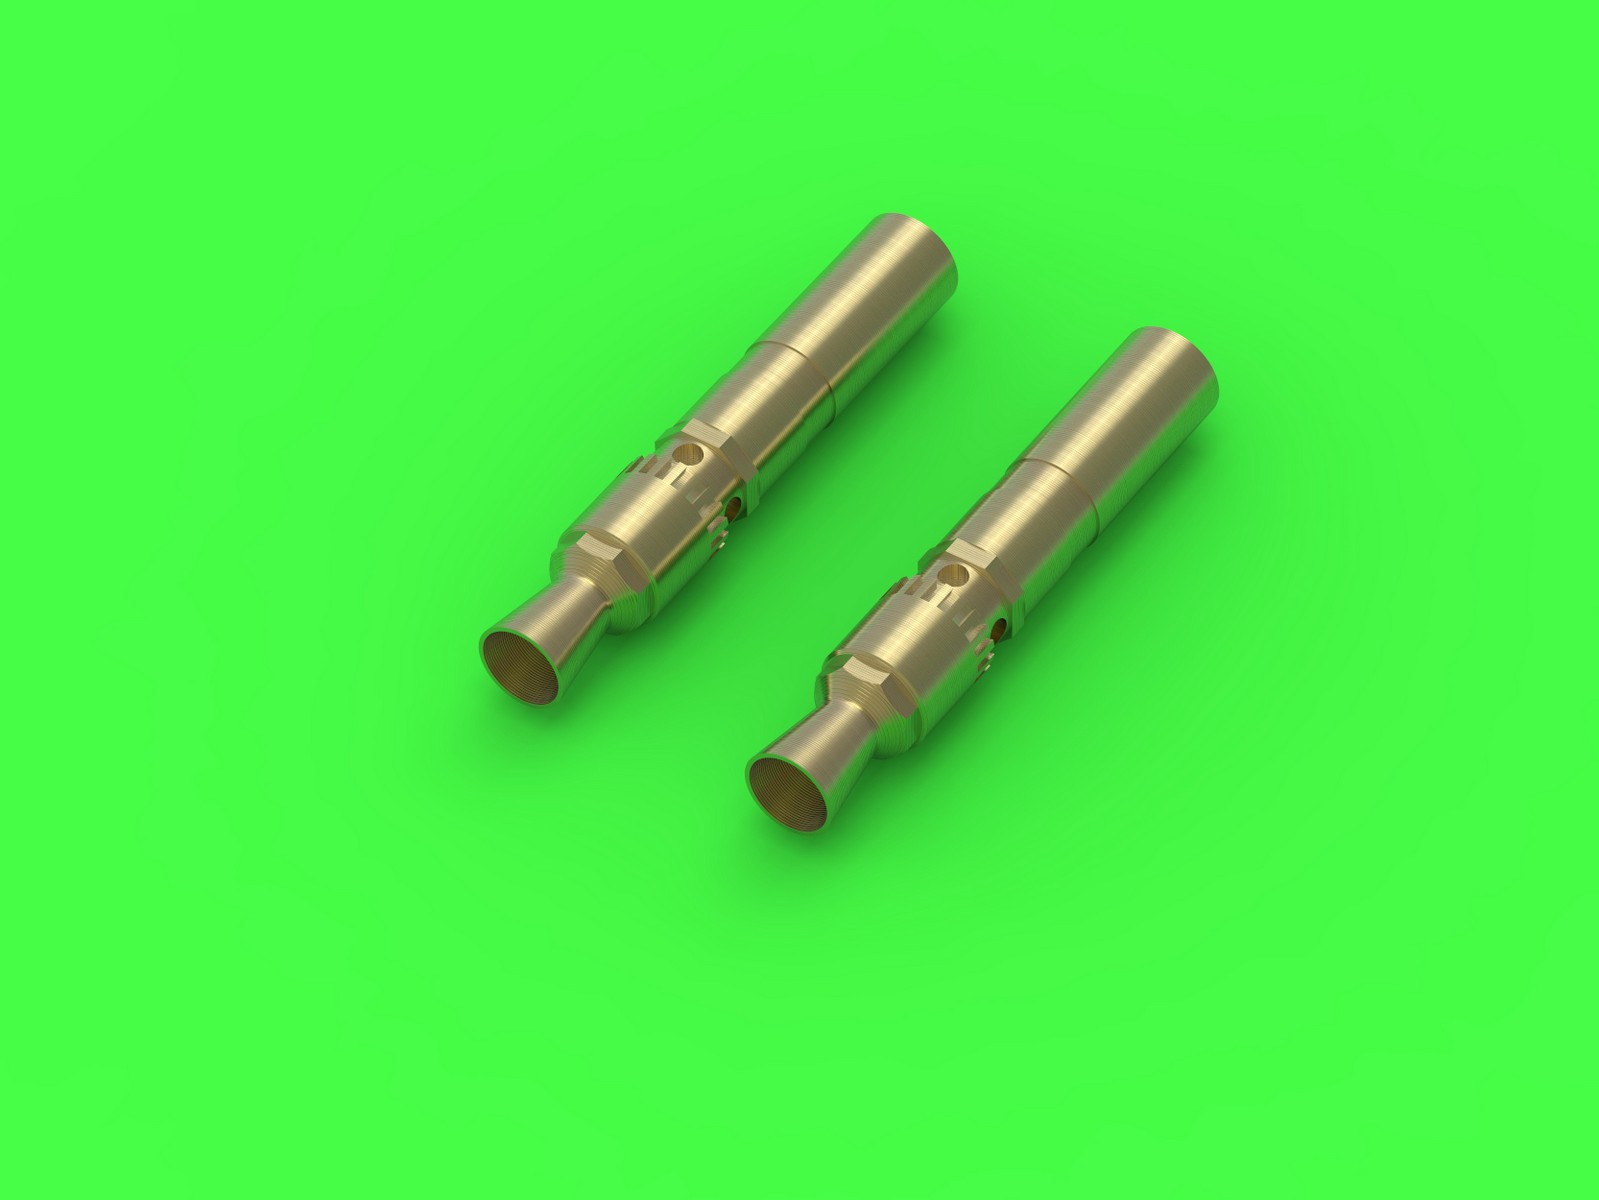 GM35028 MG 34 - German machine gun barrel tips